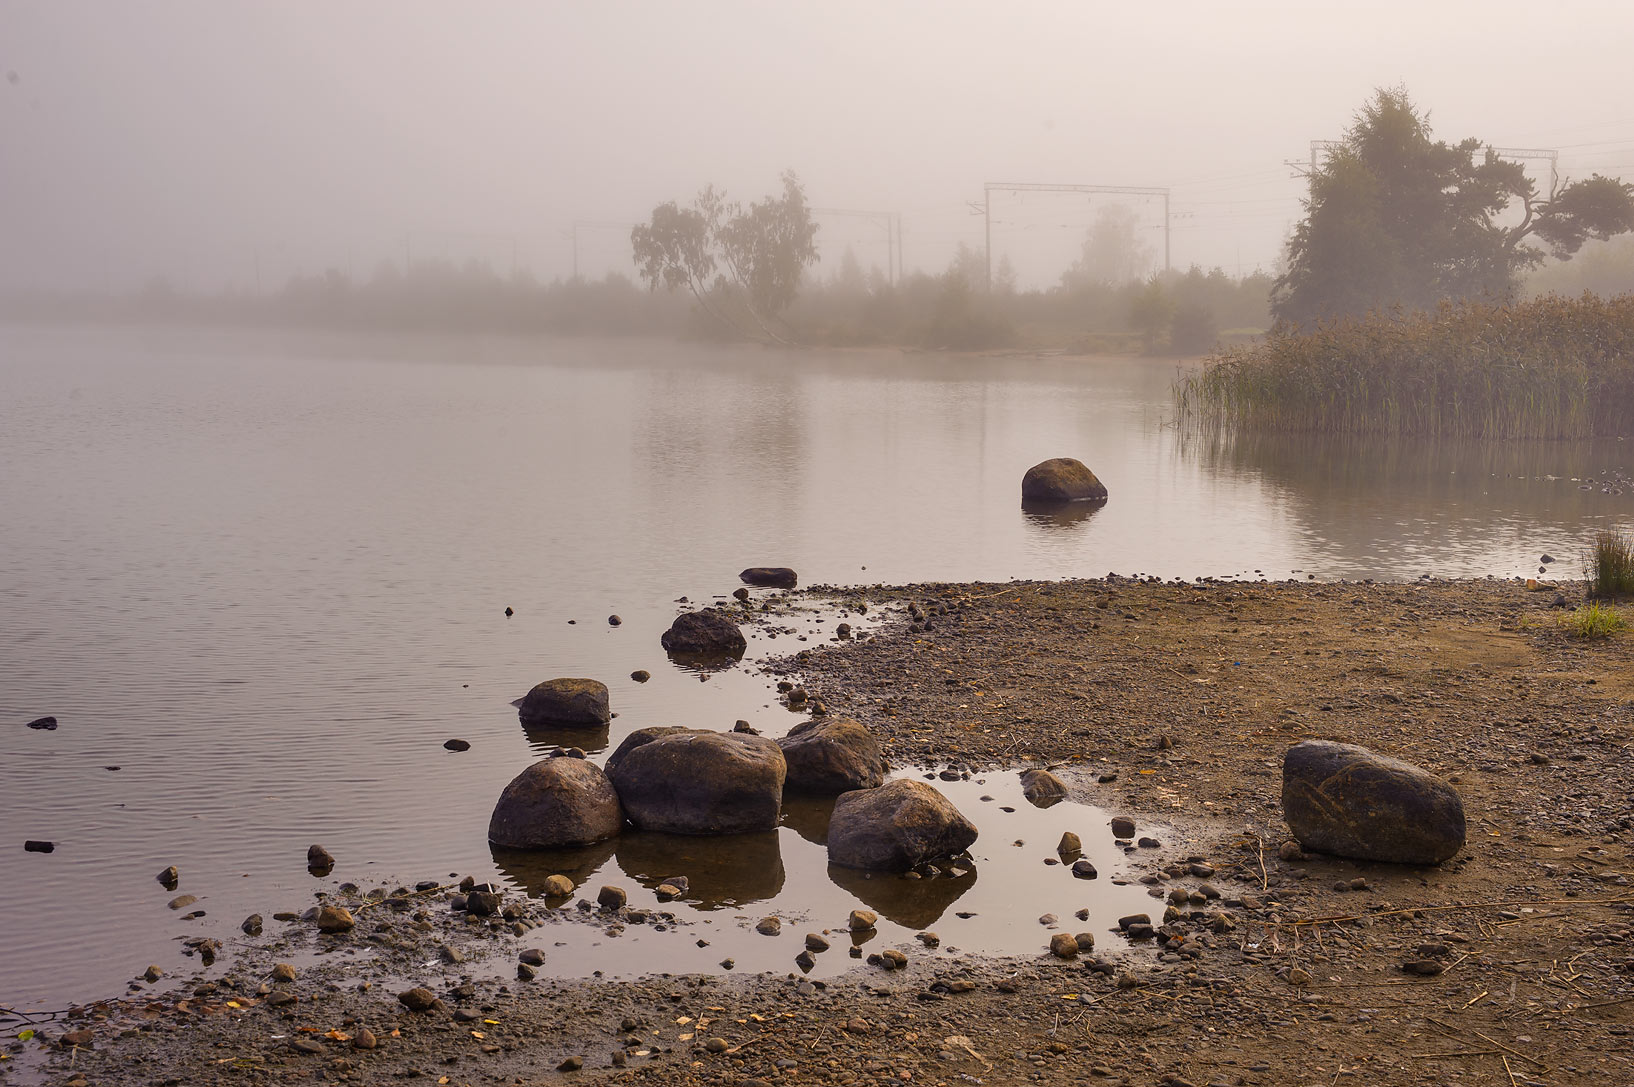 Beach of Kavgolovskoe Lake in fog. Kavgolovo, a suburb of St.Petersburg, Russia